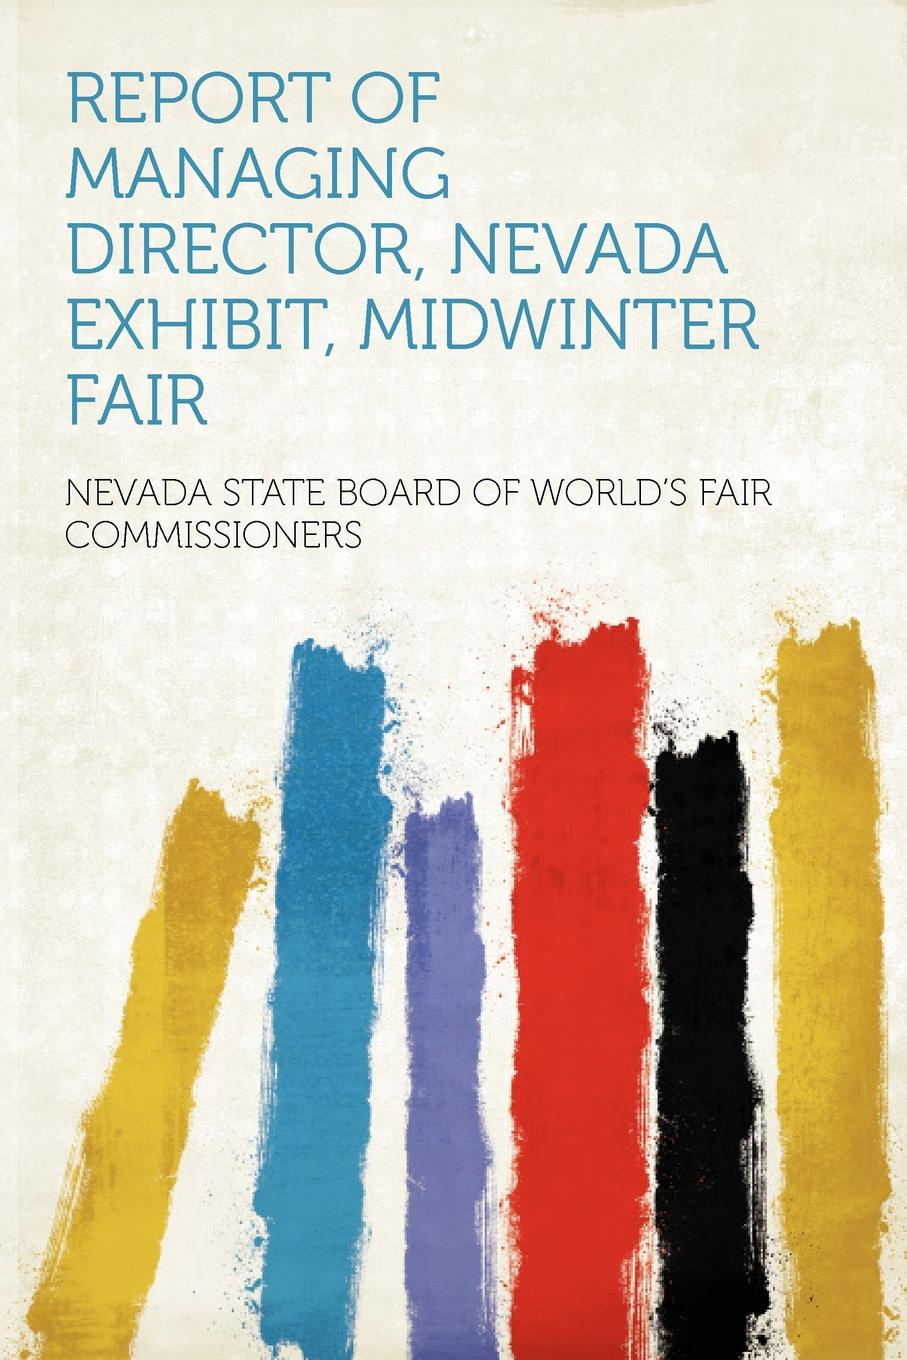 Report of Managing Director, Nevada Exhibit, Midwinter Fair